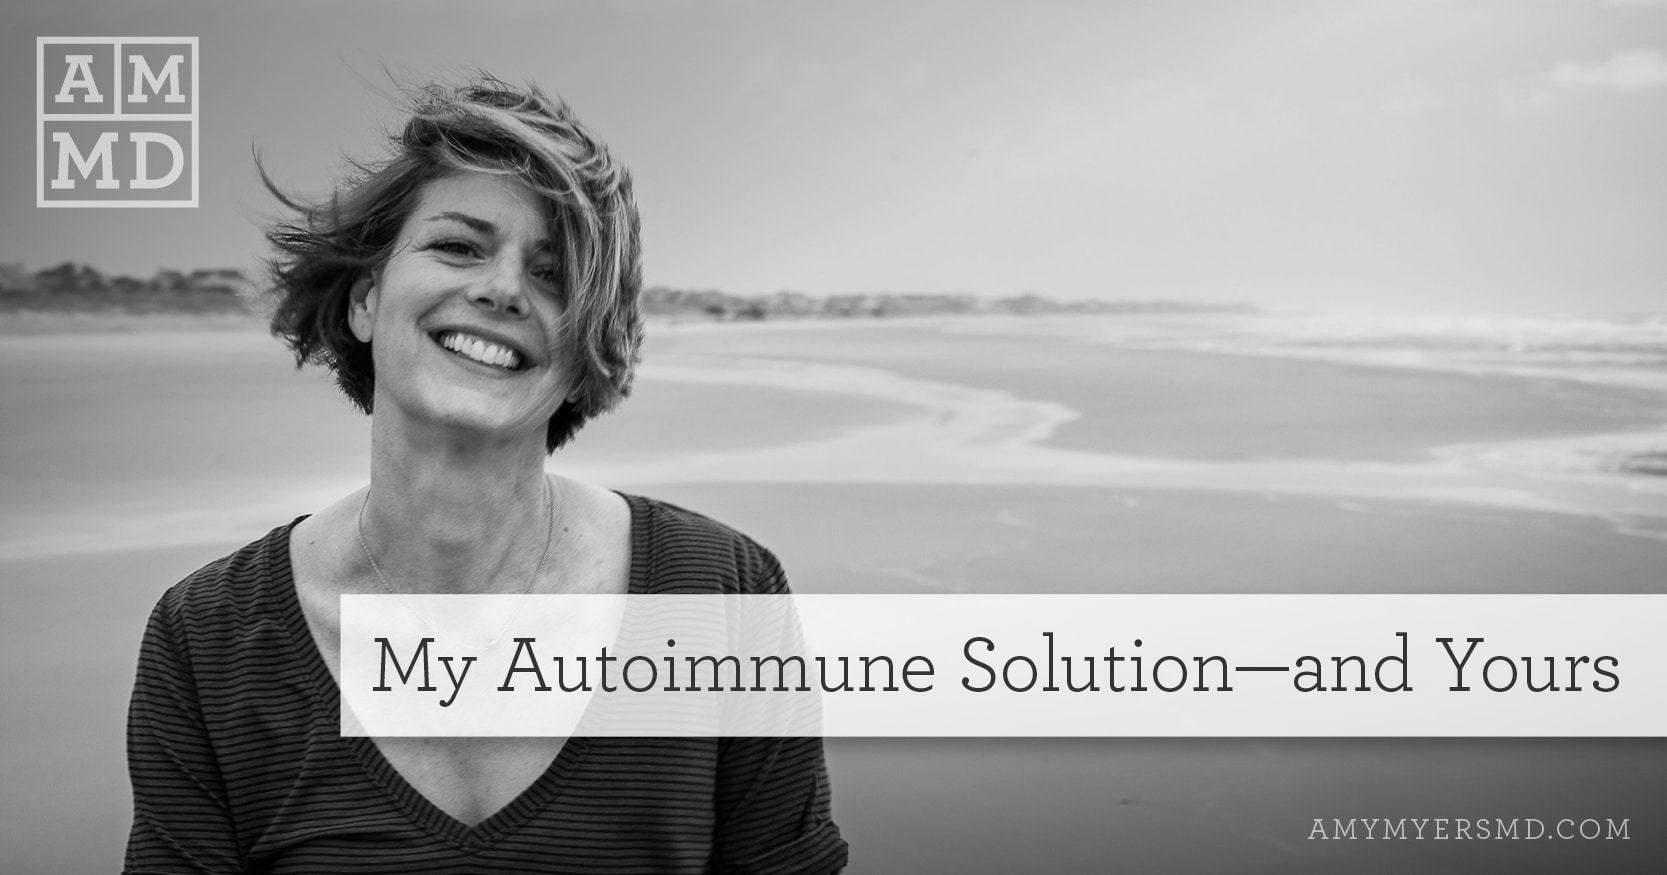 My Autoimmune Solution--and Yours - Dr. Myers at the Beach - Featured Image - Amy Myers MD